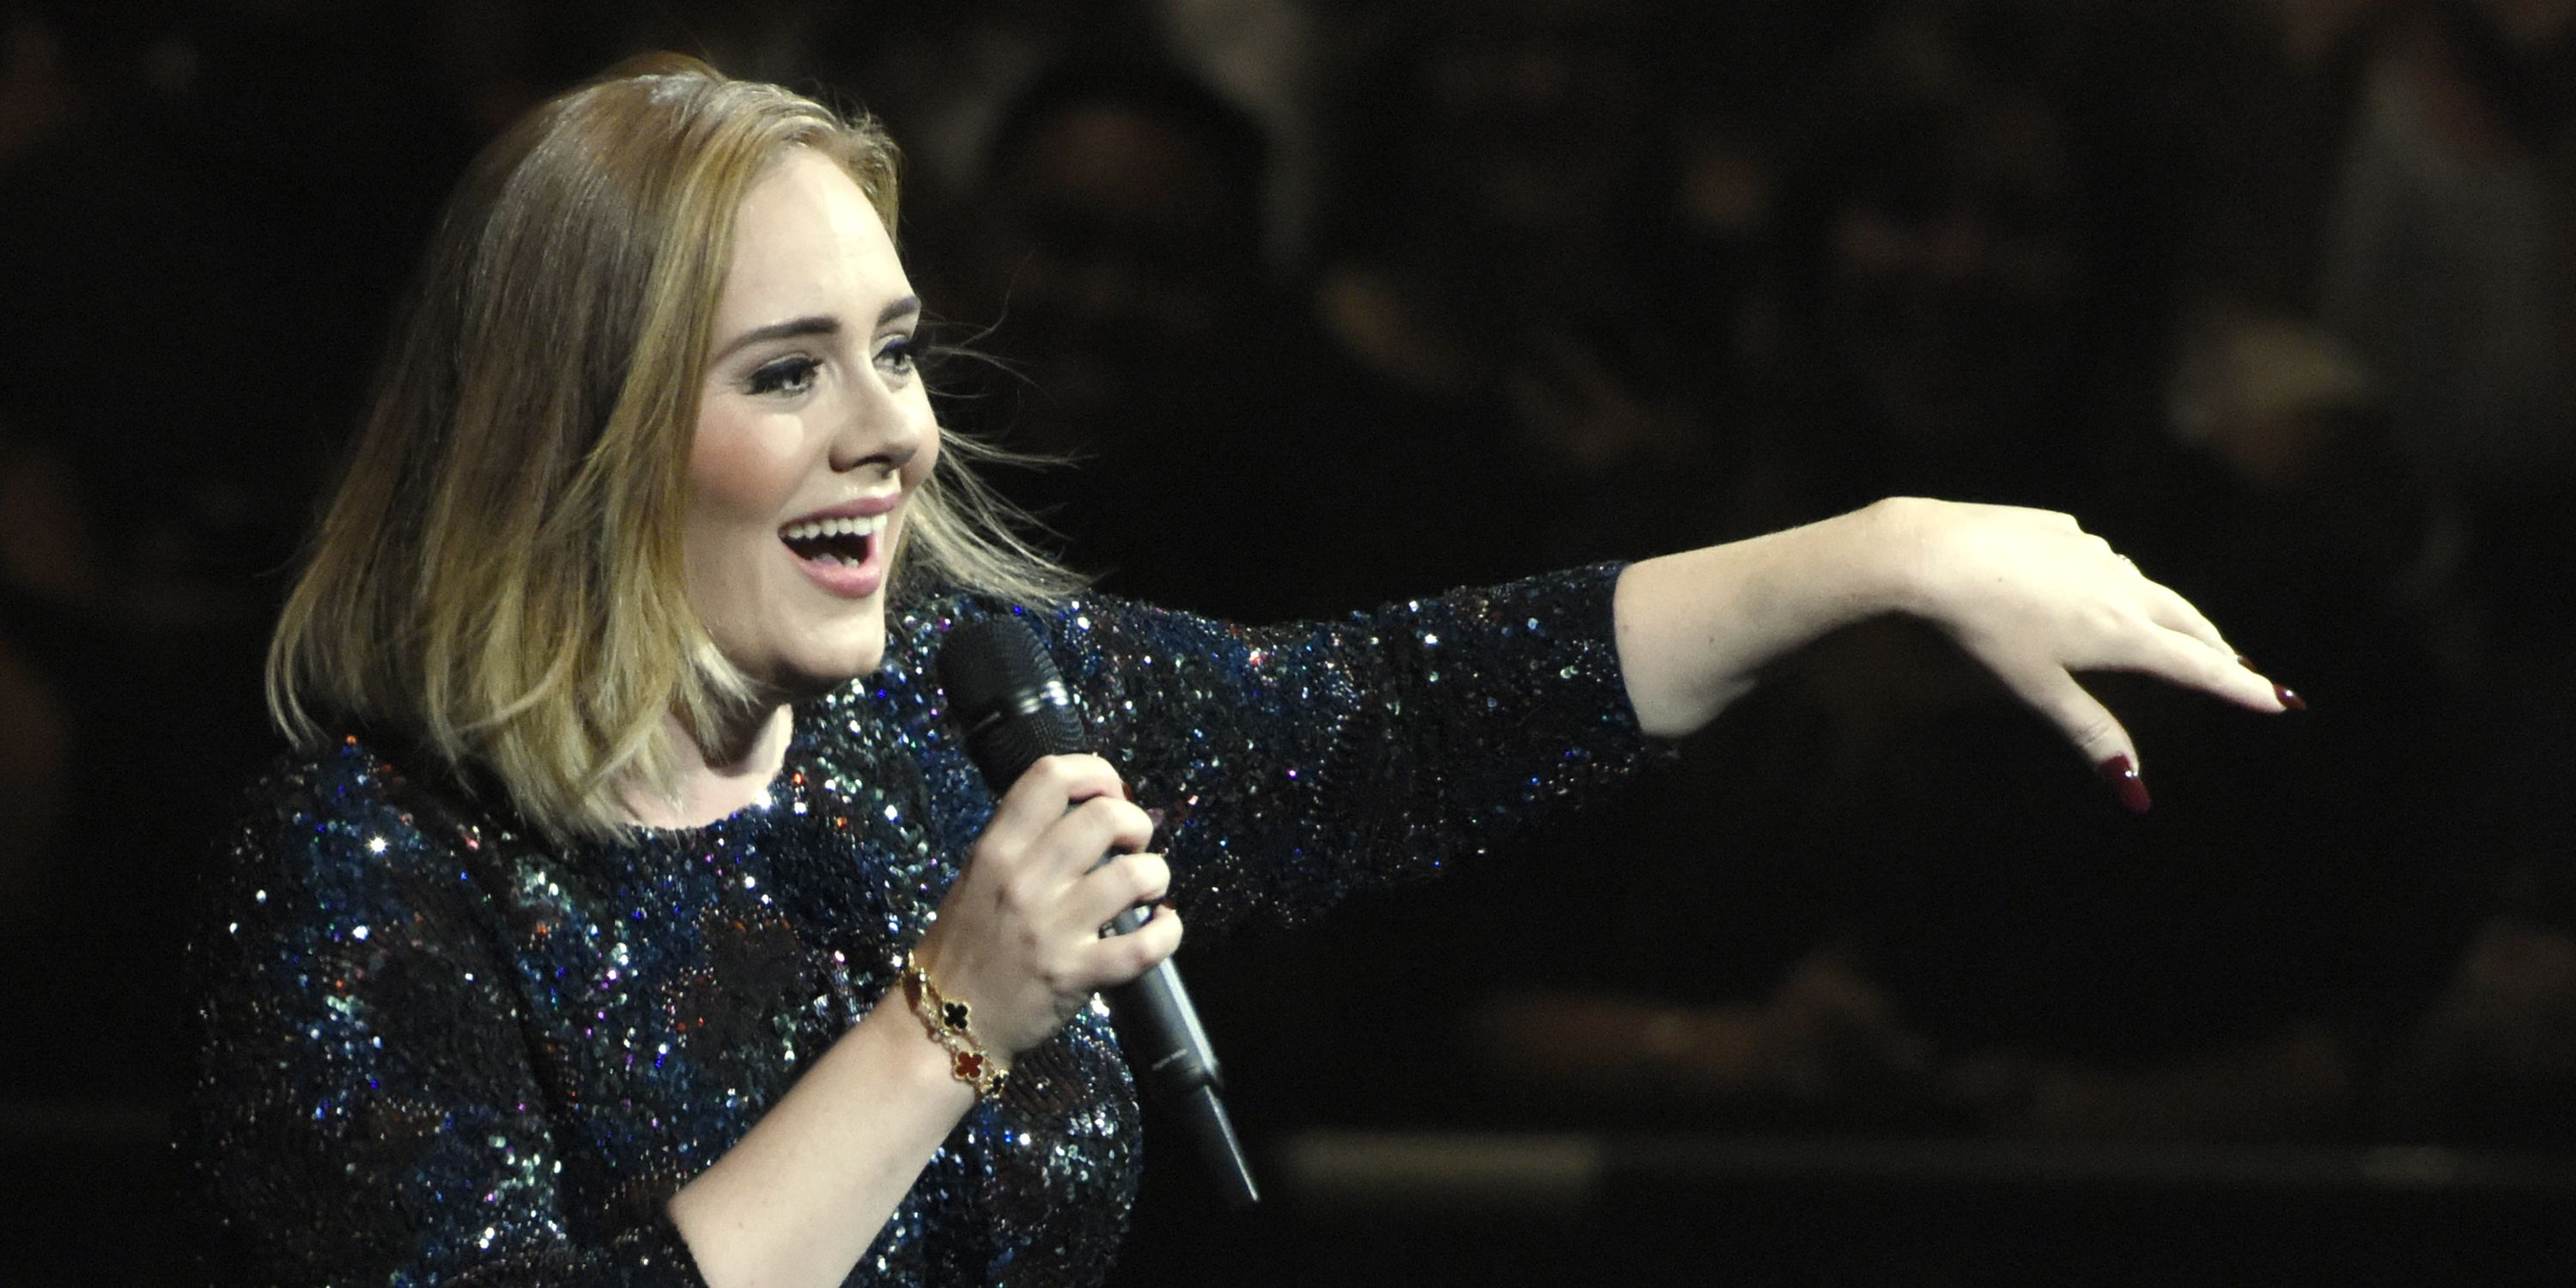 OAKLAND, CA - AUGUST 02: Adele performs during her 'Adele Live 2016' tour at ORACLE Arena on August 2, 2016 in Oakland, California.